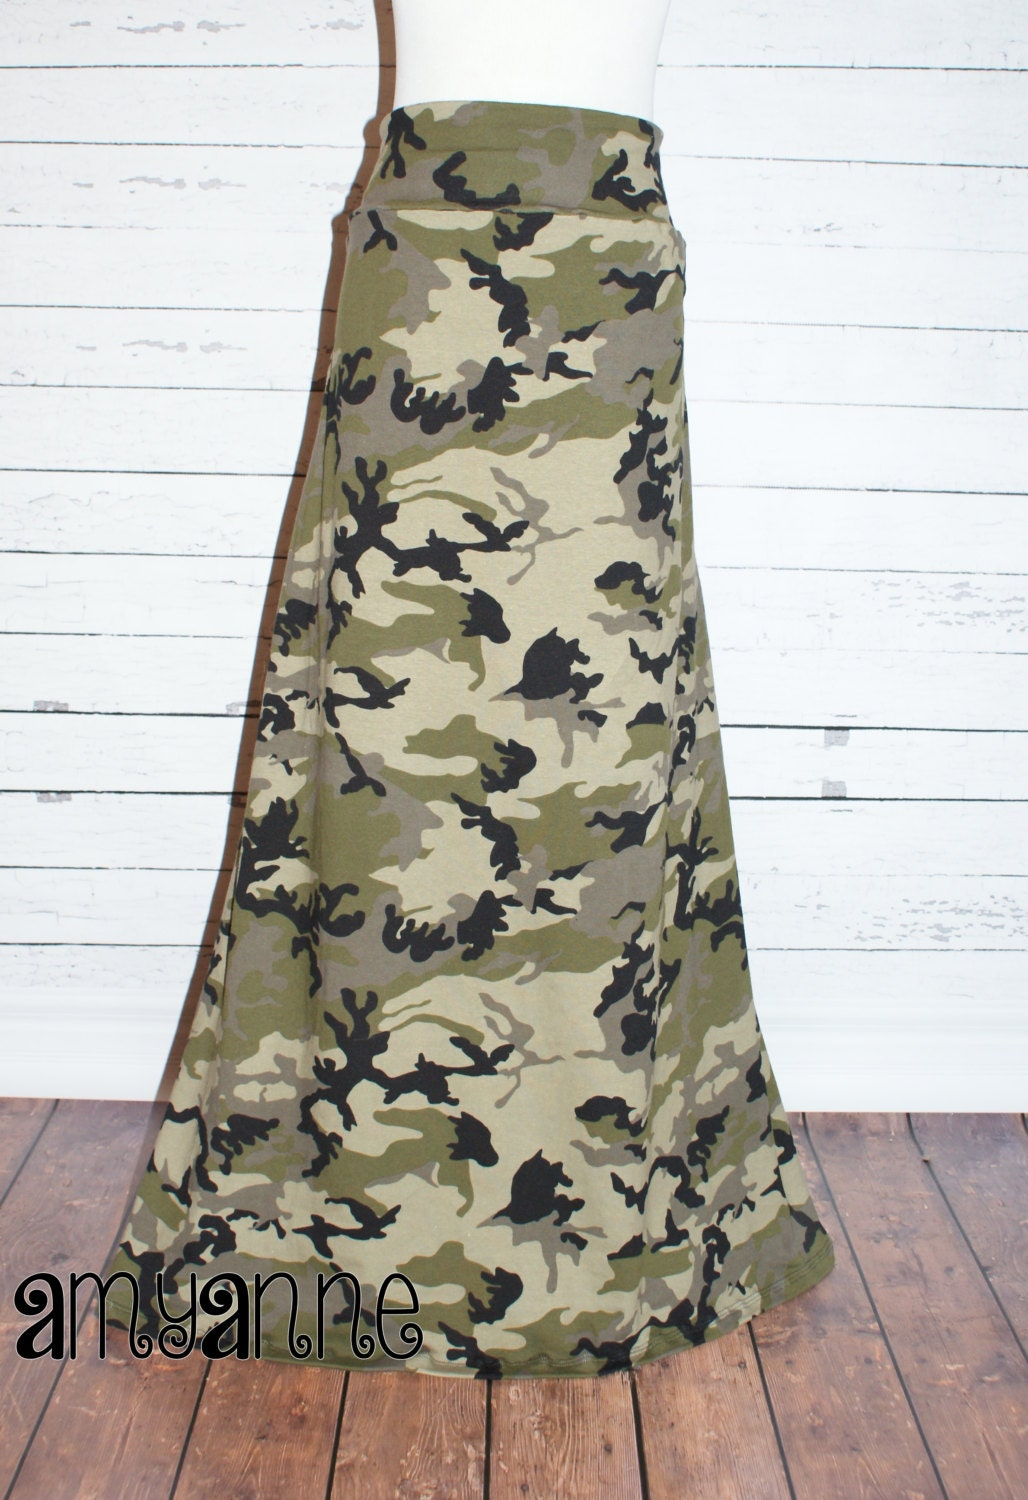 camo maxi skirt jersey knit womens and plus size camouflage